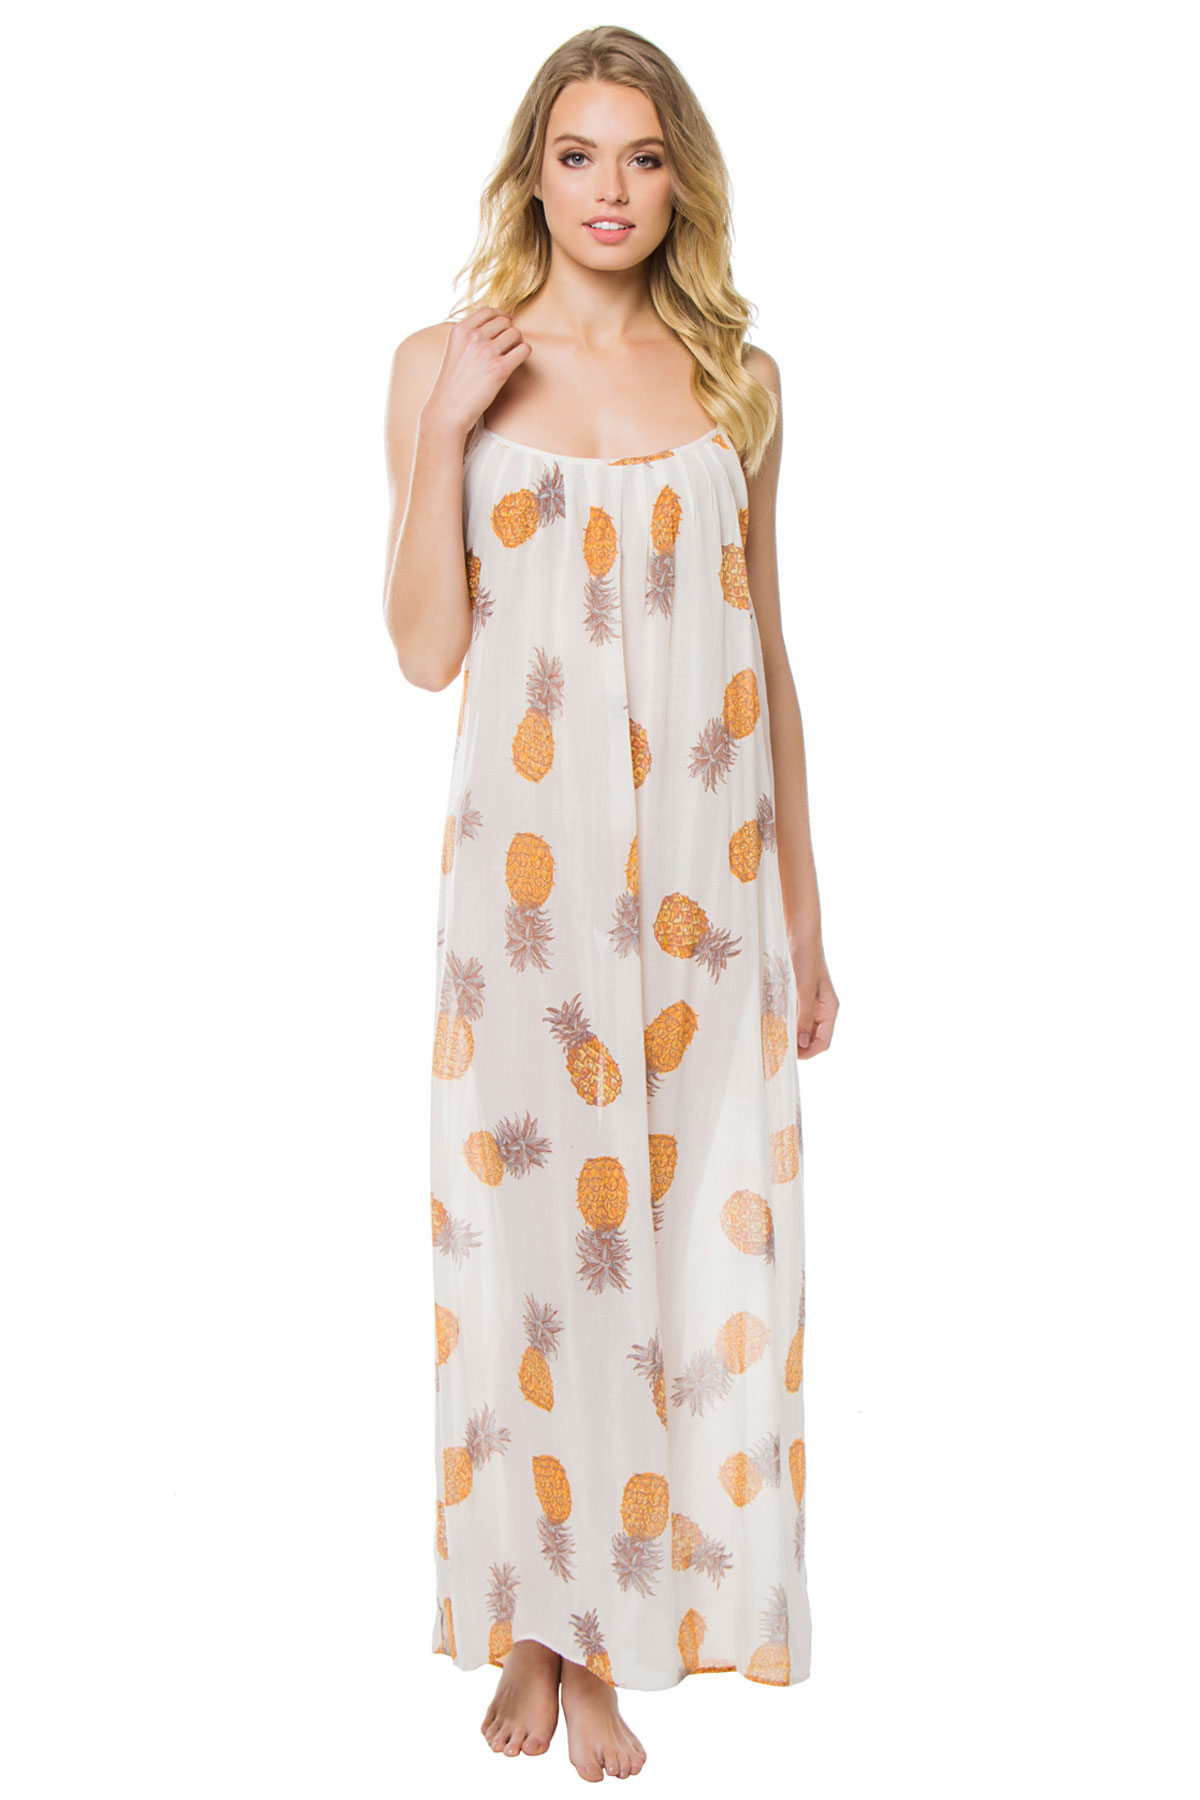 Anana Pineapple Print Maxi Dress - Gold/Ivory 1